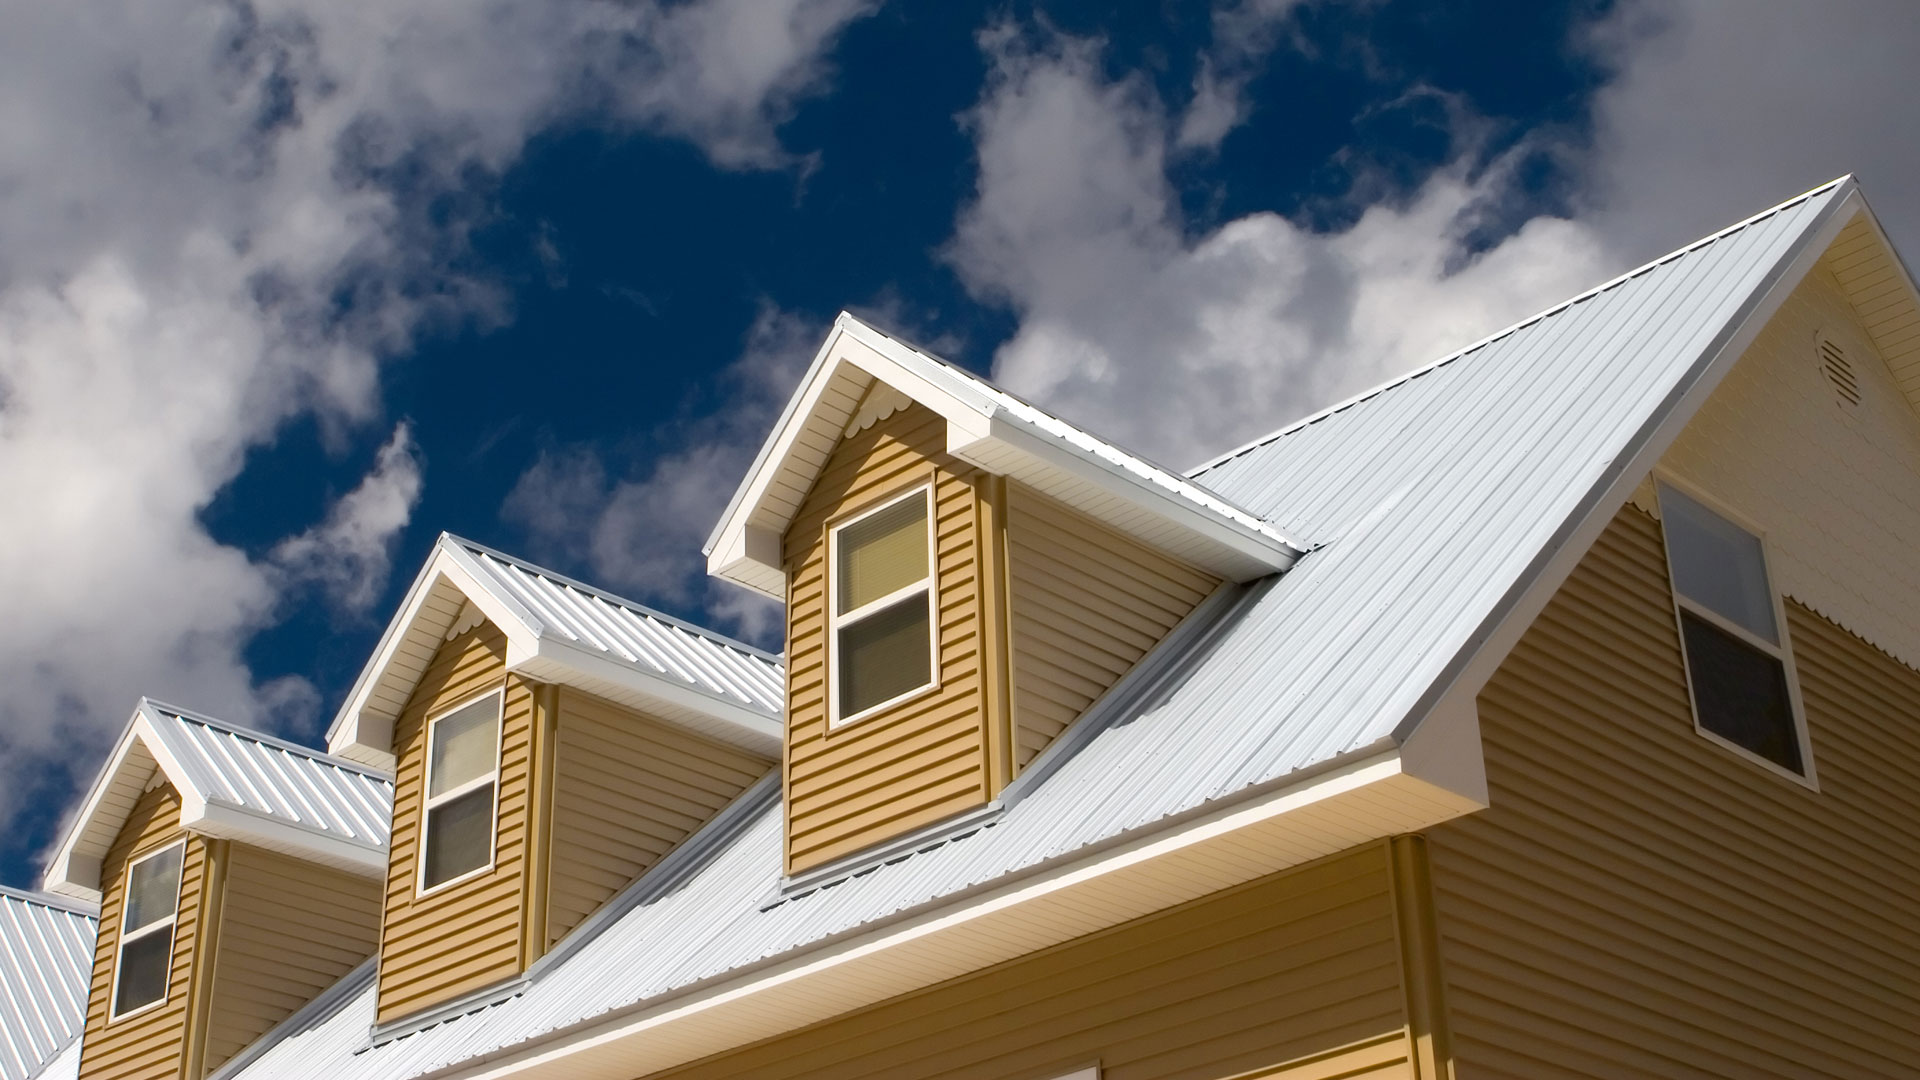 Pace Roofing Pace Residential Roofing Pace Commercial Roofing Pace Gutters  Pace Siding